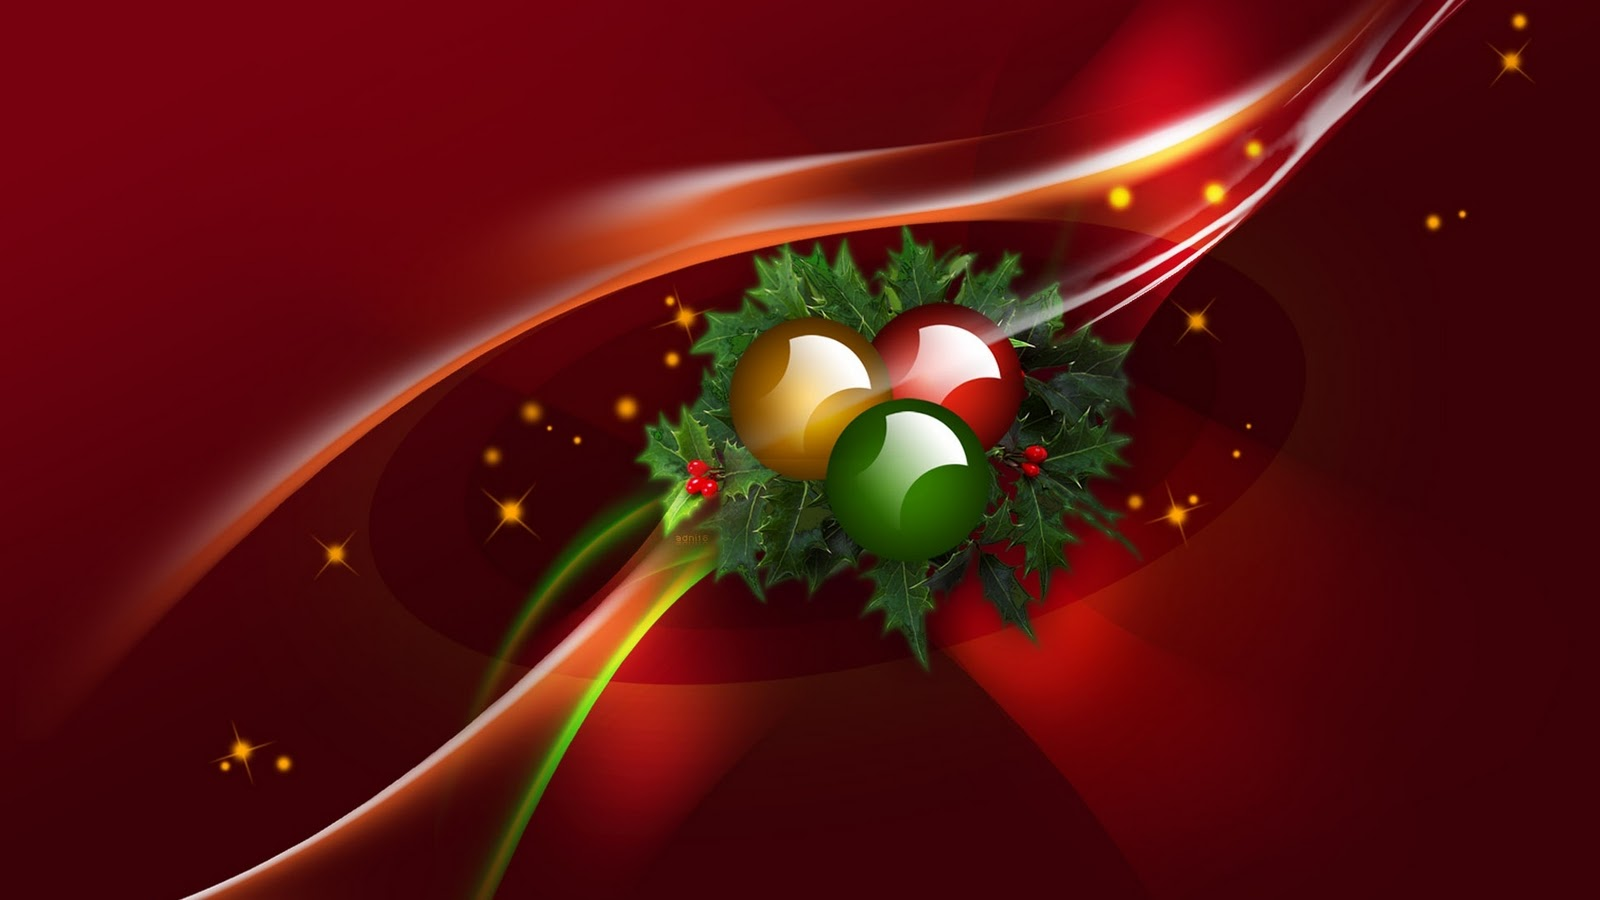 images for best wallpaper 3d card | beautiful eidcard wallpapers hd